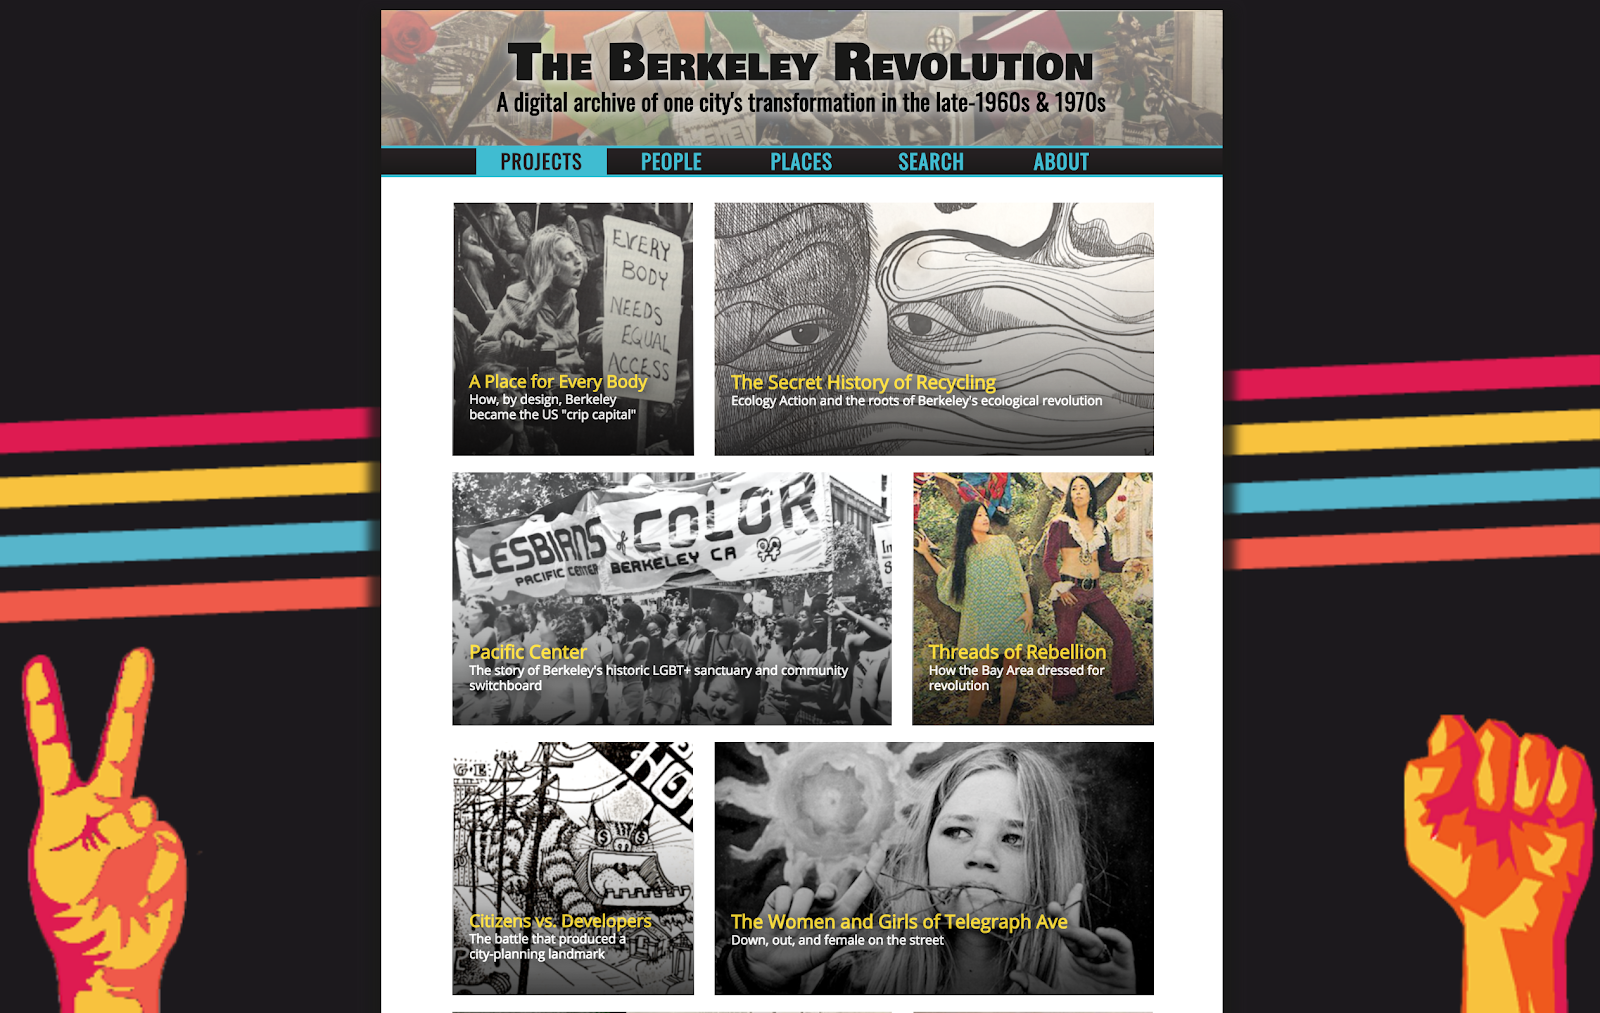 A screenshot of the homepage for The Berkeley Revolution project.